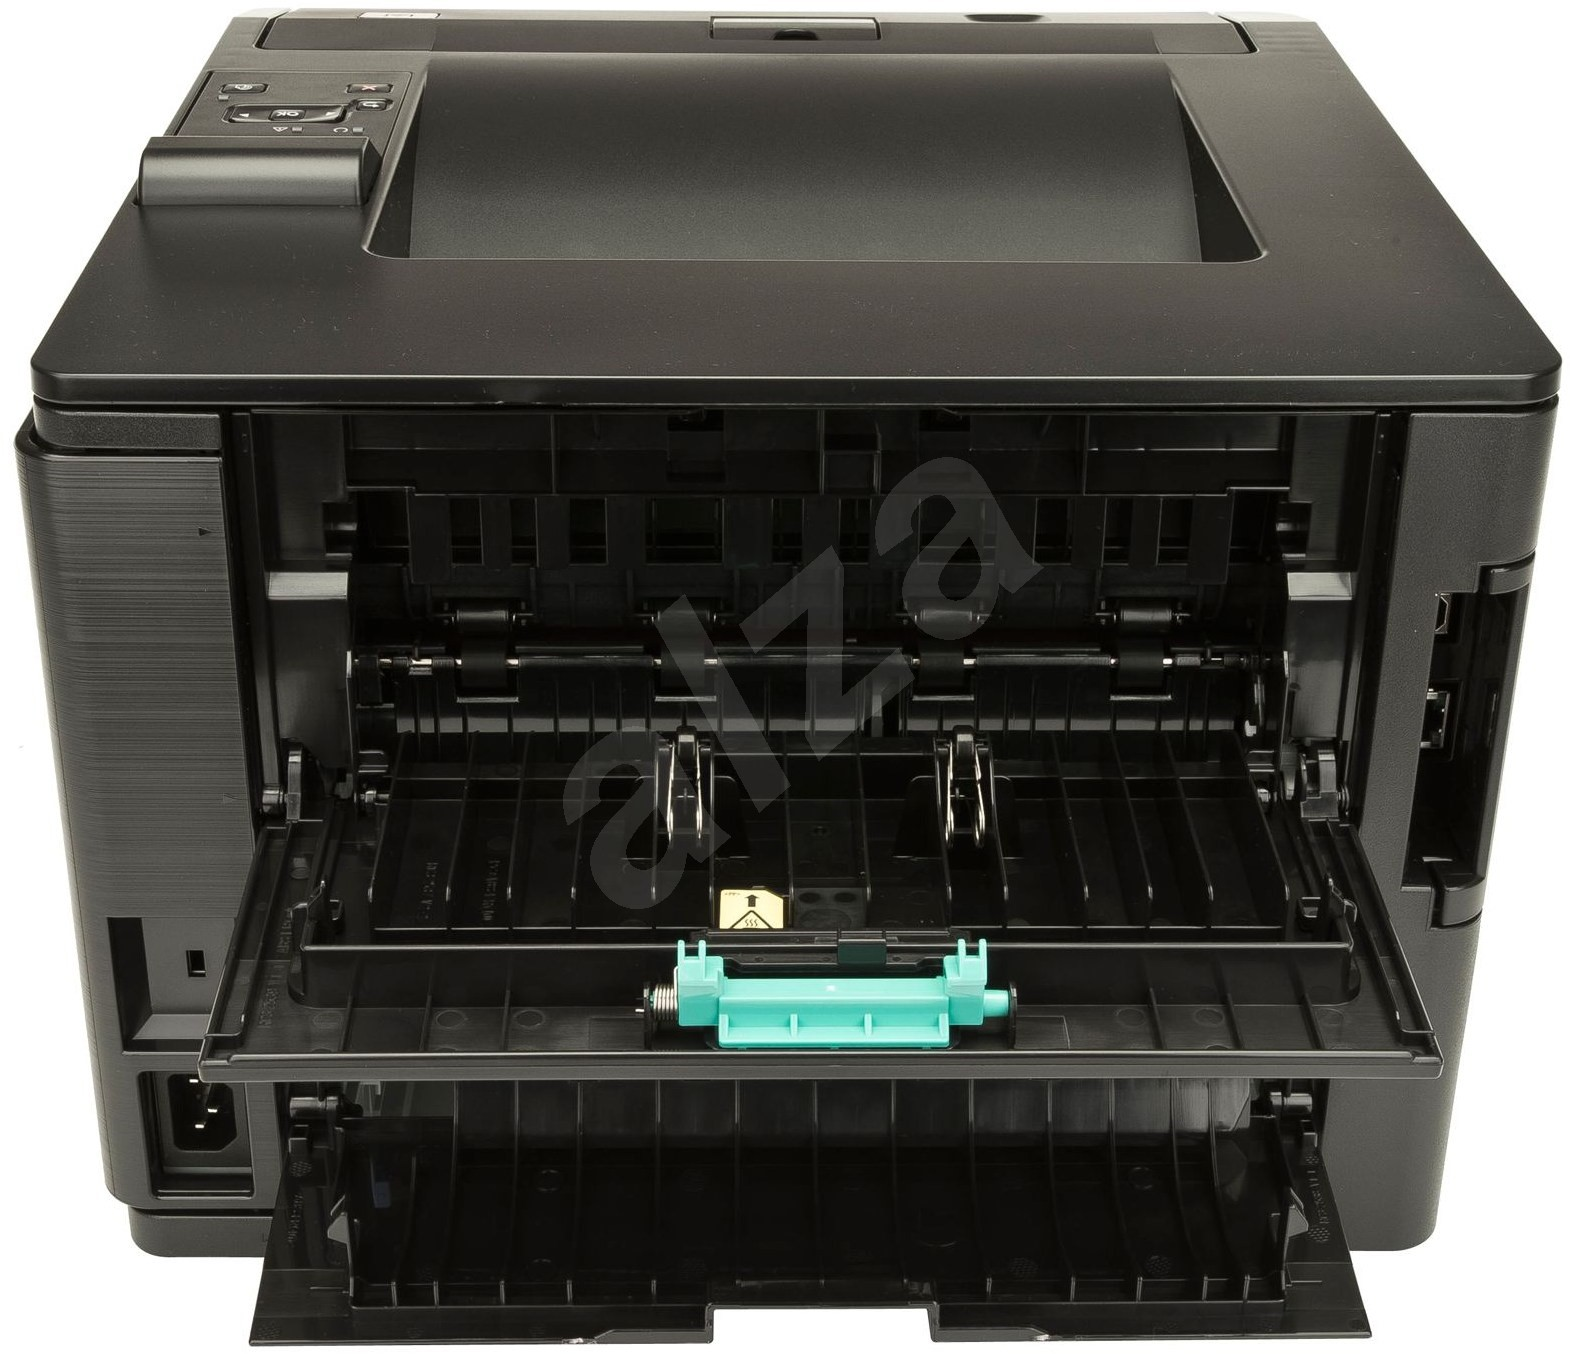 hp laserjet 400 m401n manual pdf